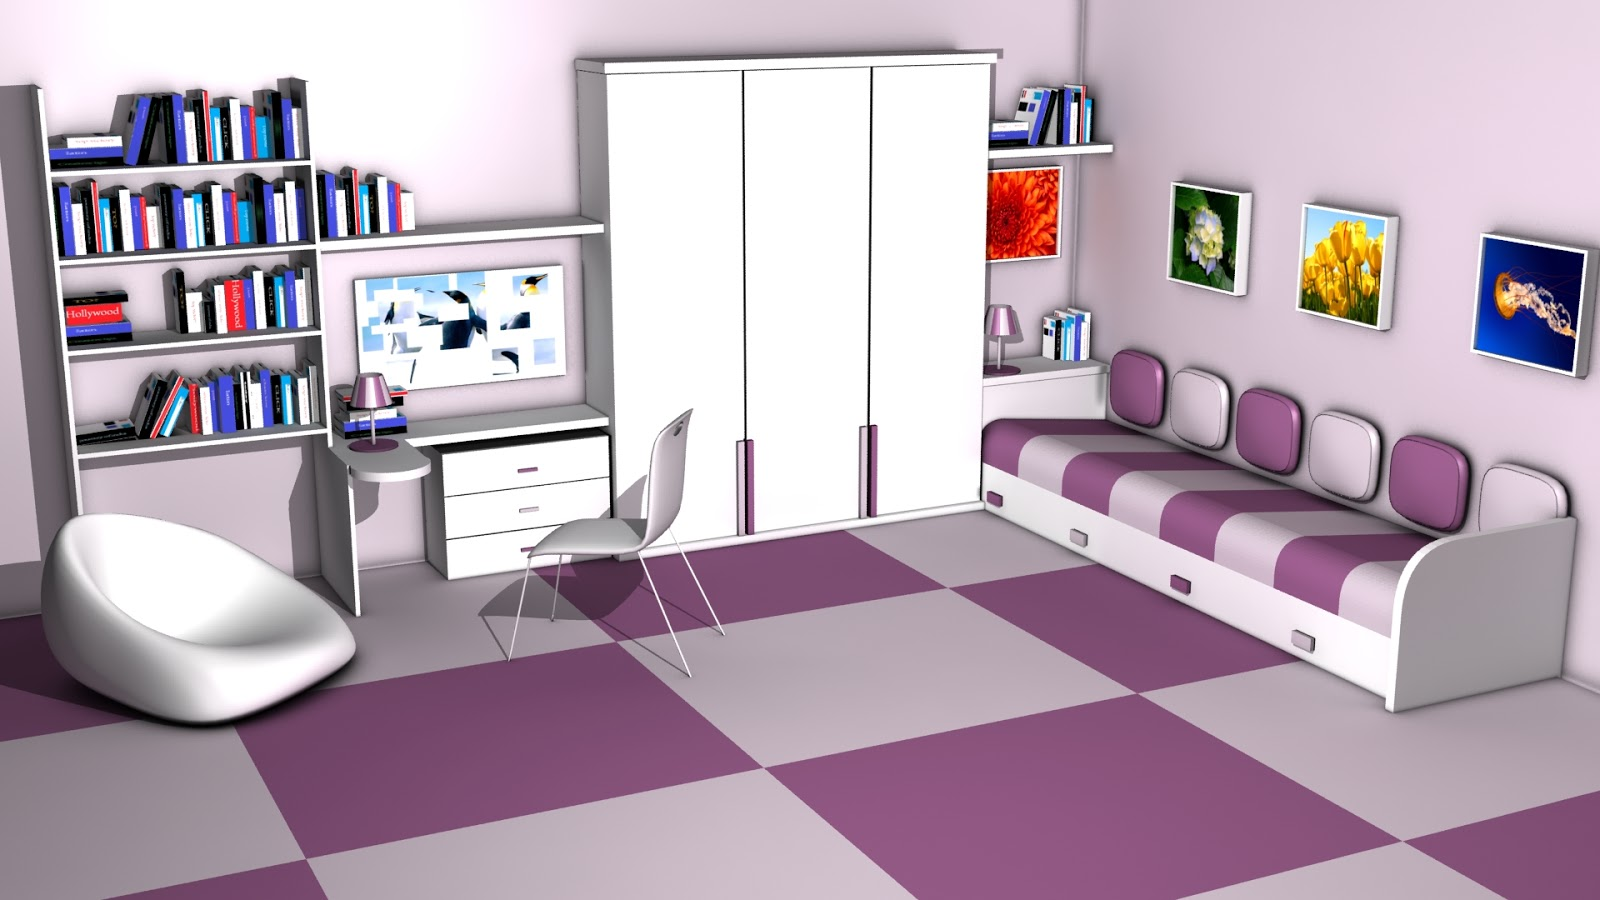 Sajid designs room interior design 3ds max for 3ds max design